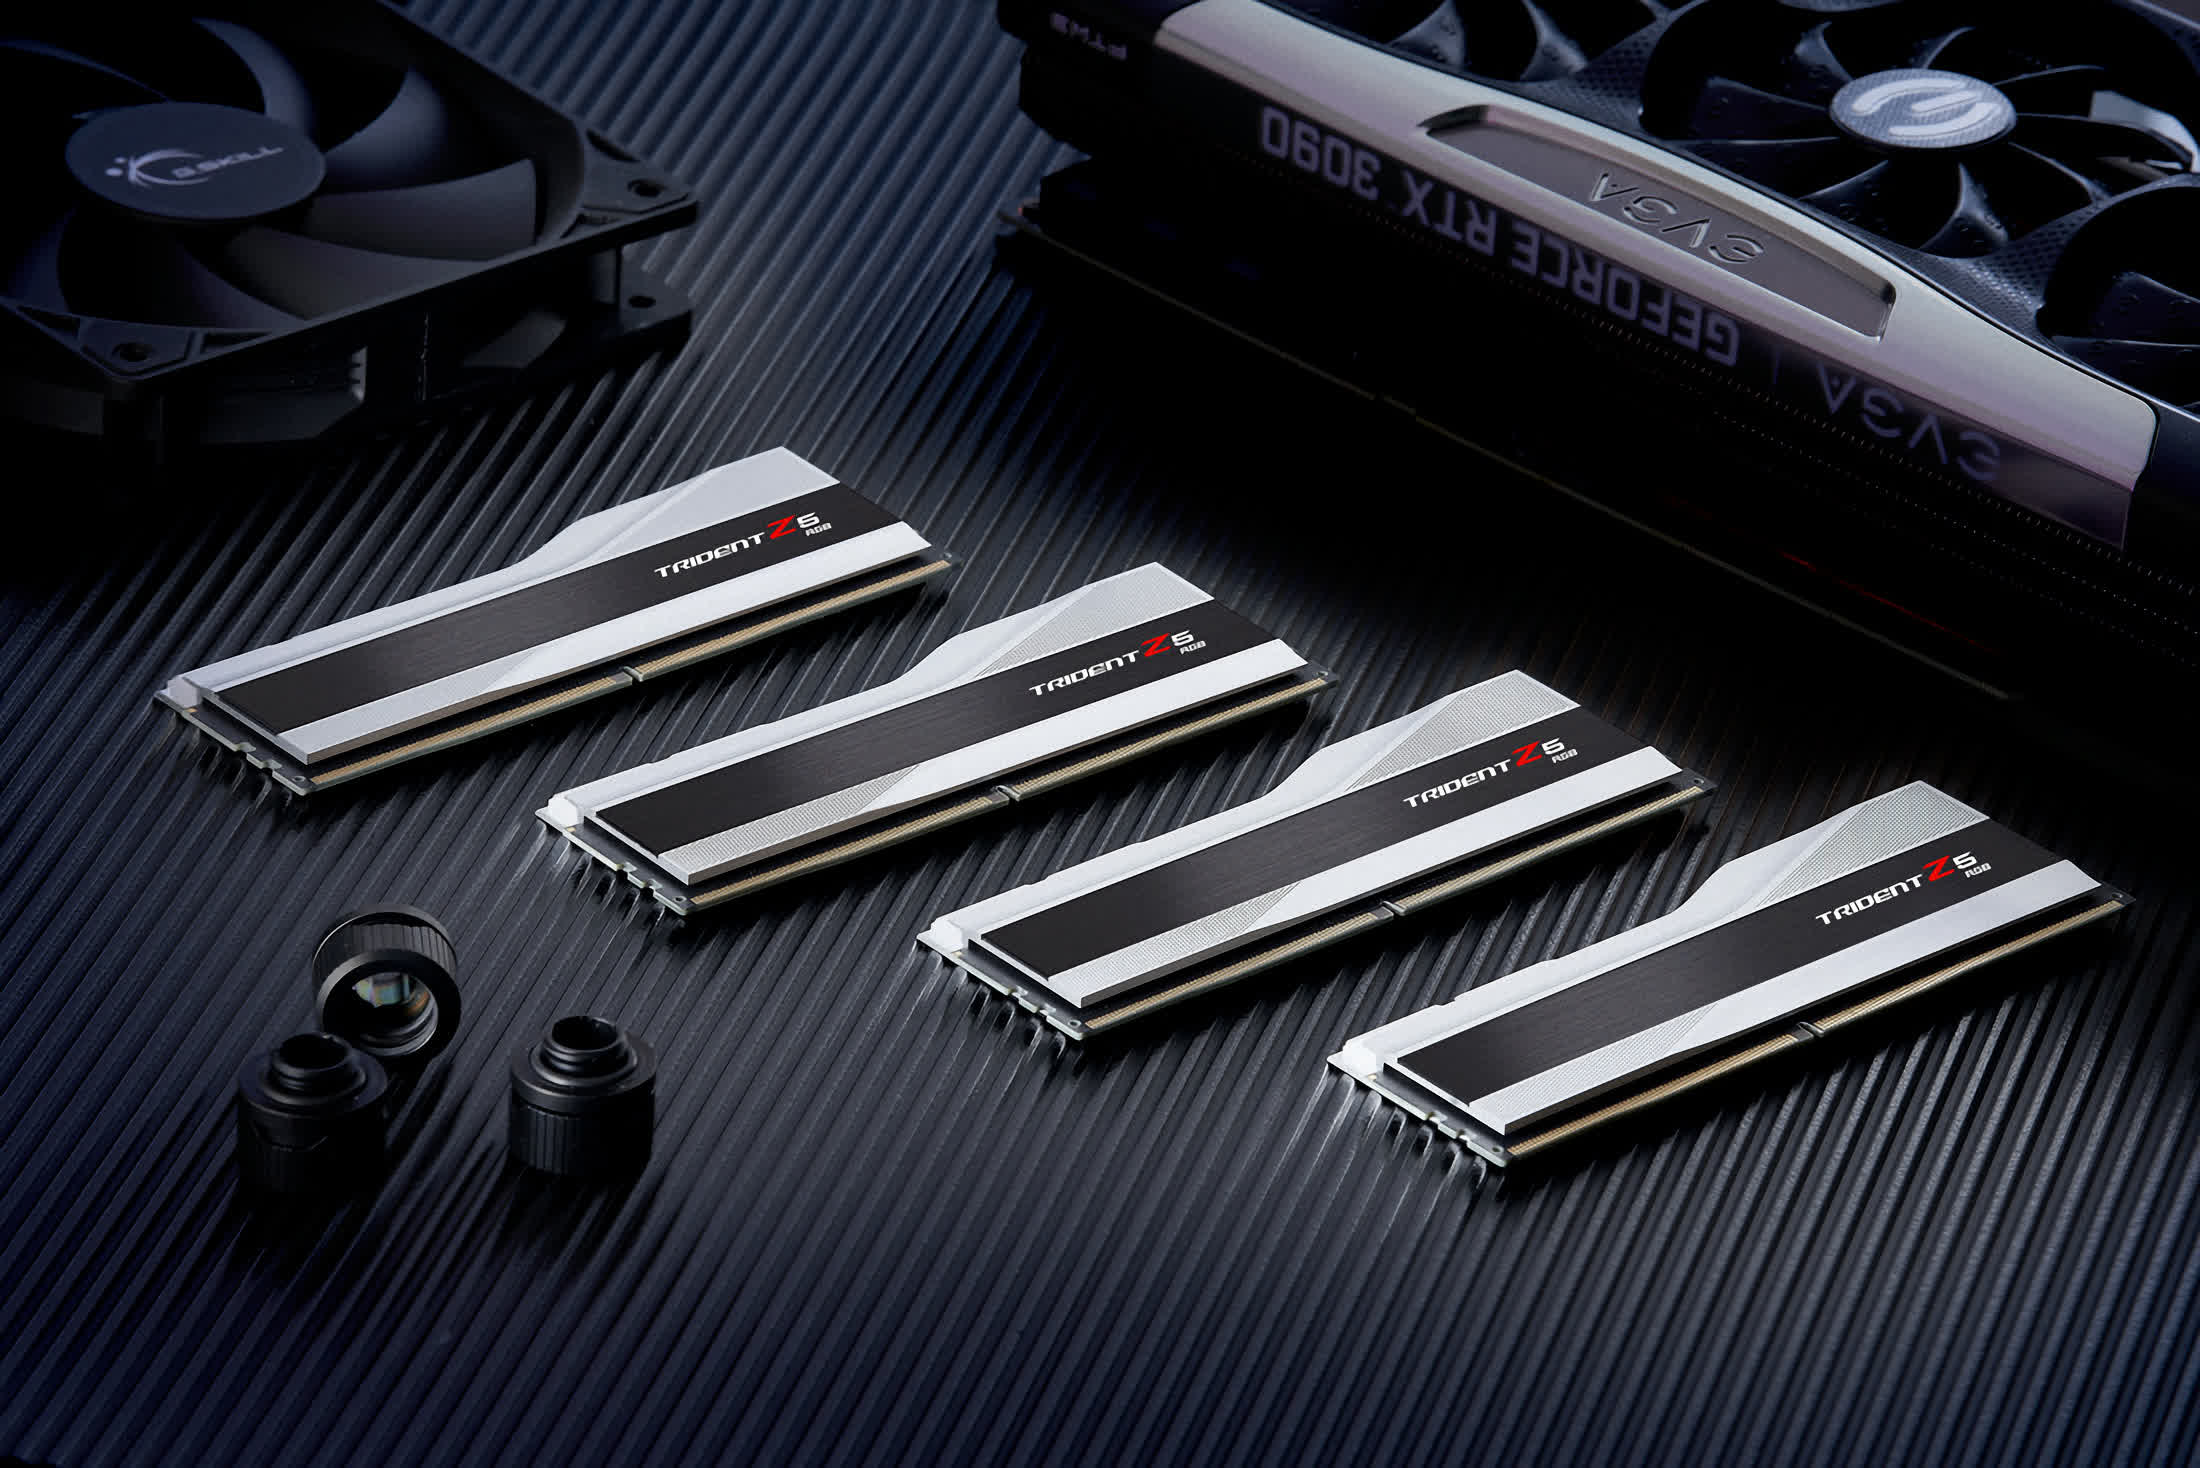 G.Skill launches Trident Z5 DDR5-6400 CL36 kits with Samsung-made memory chips